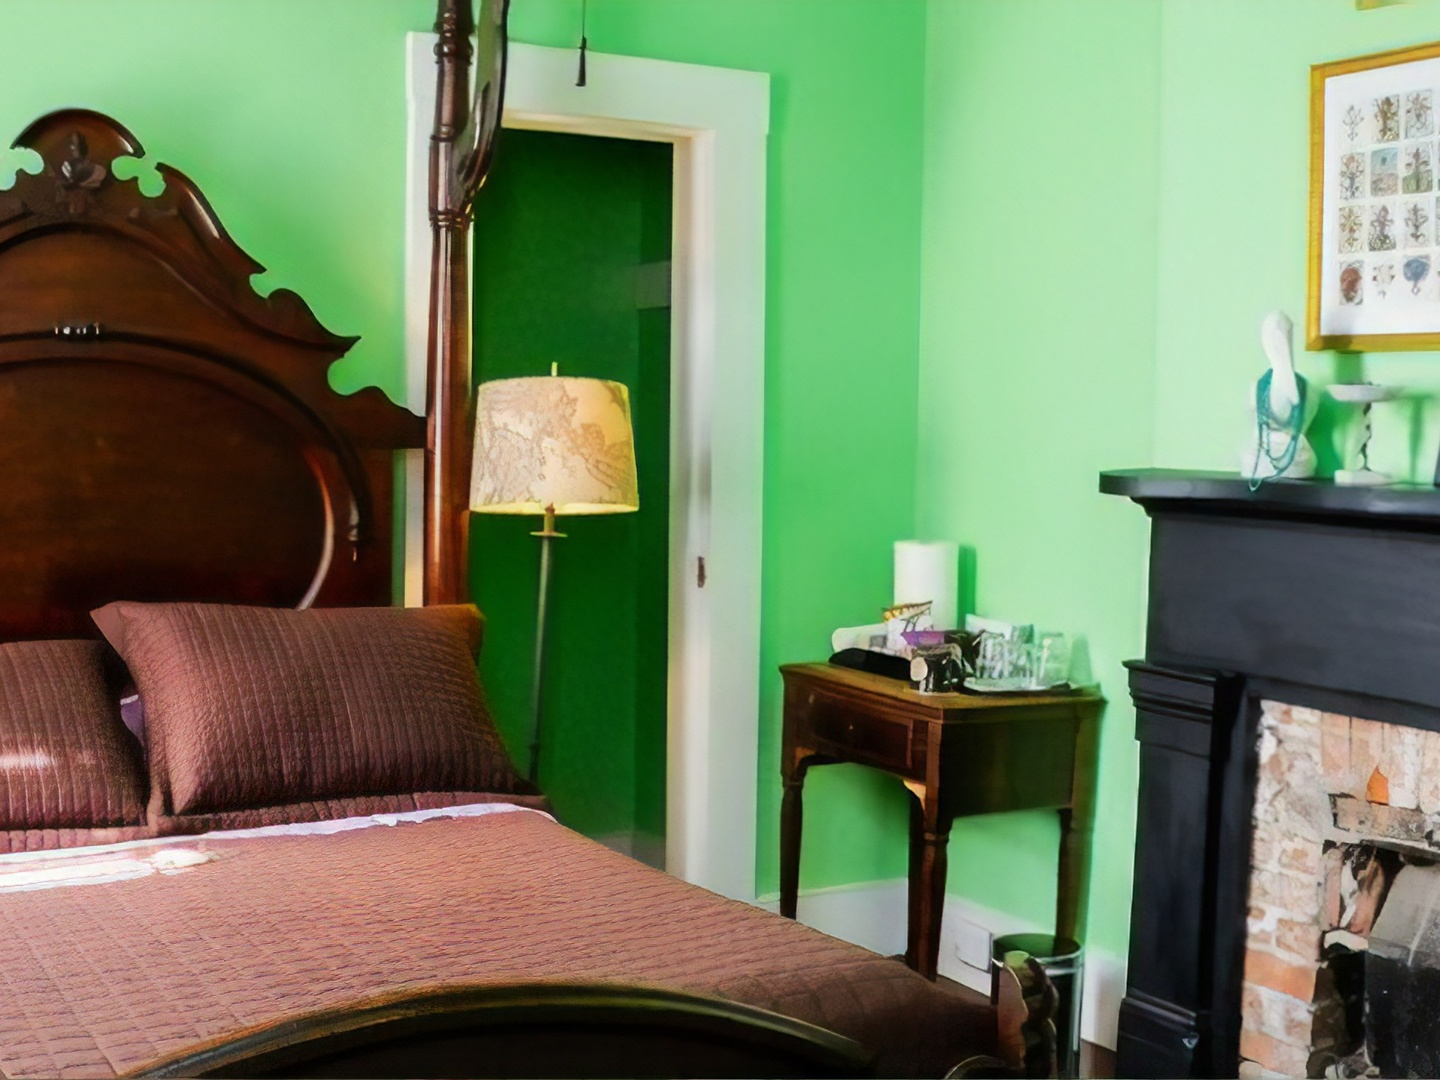 New Orleans Bed and Breakfast